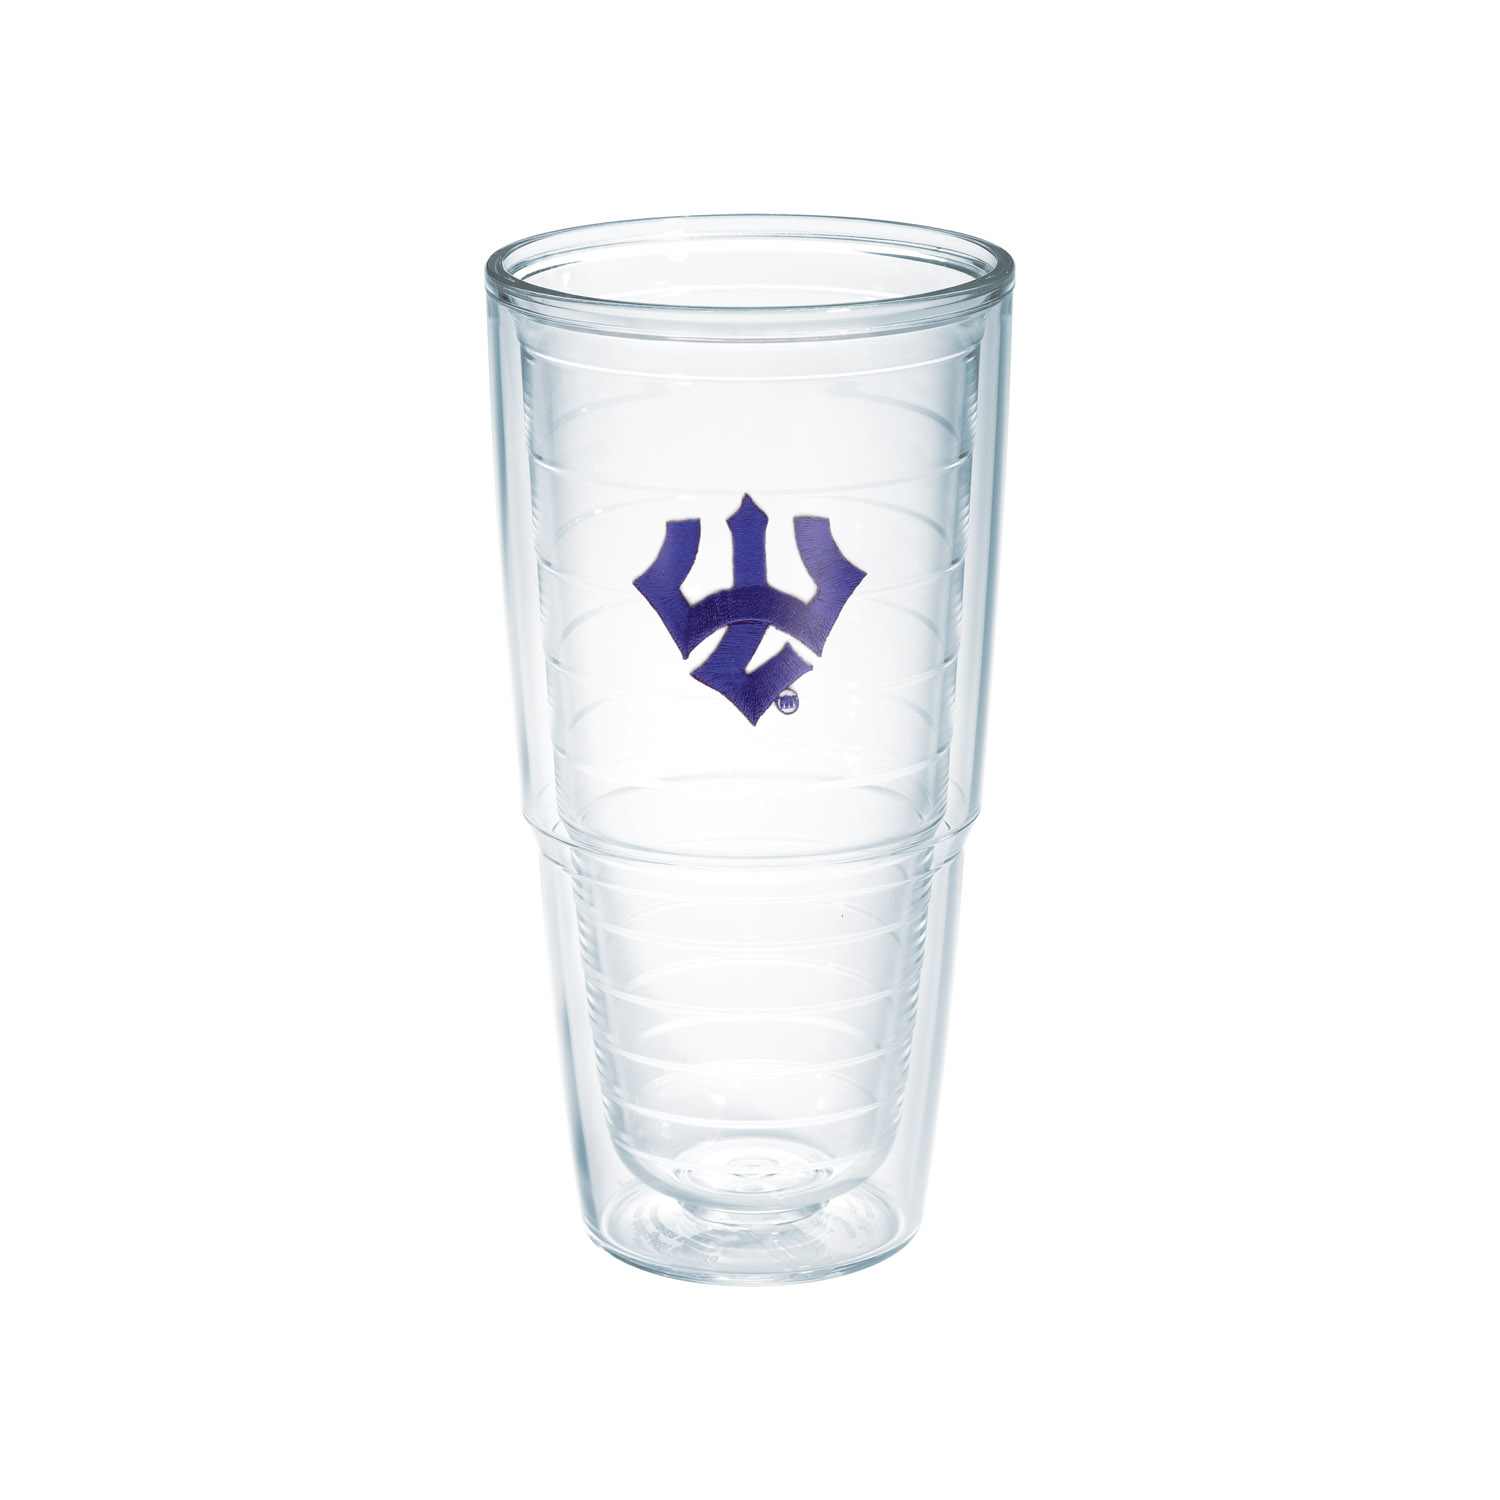 Image For Tervis Tumbler with Trident 24 oz